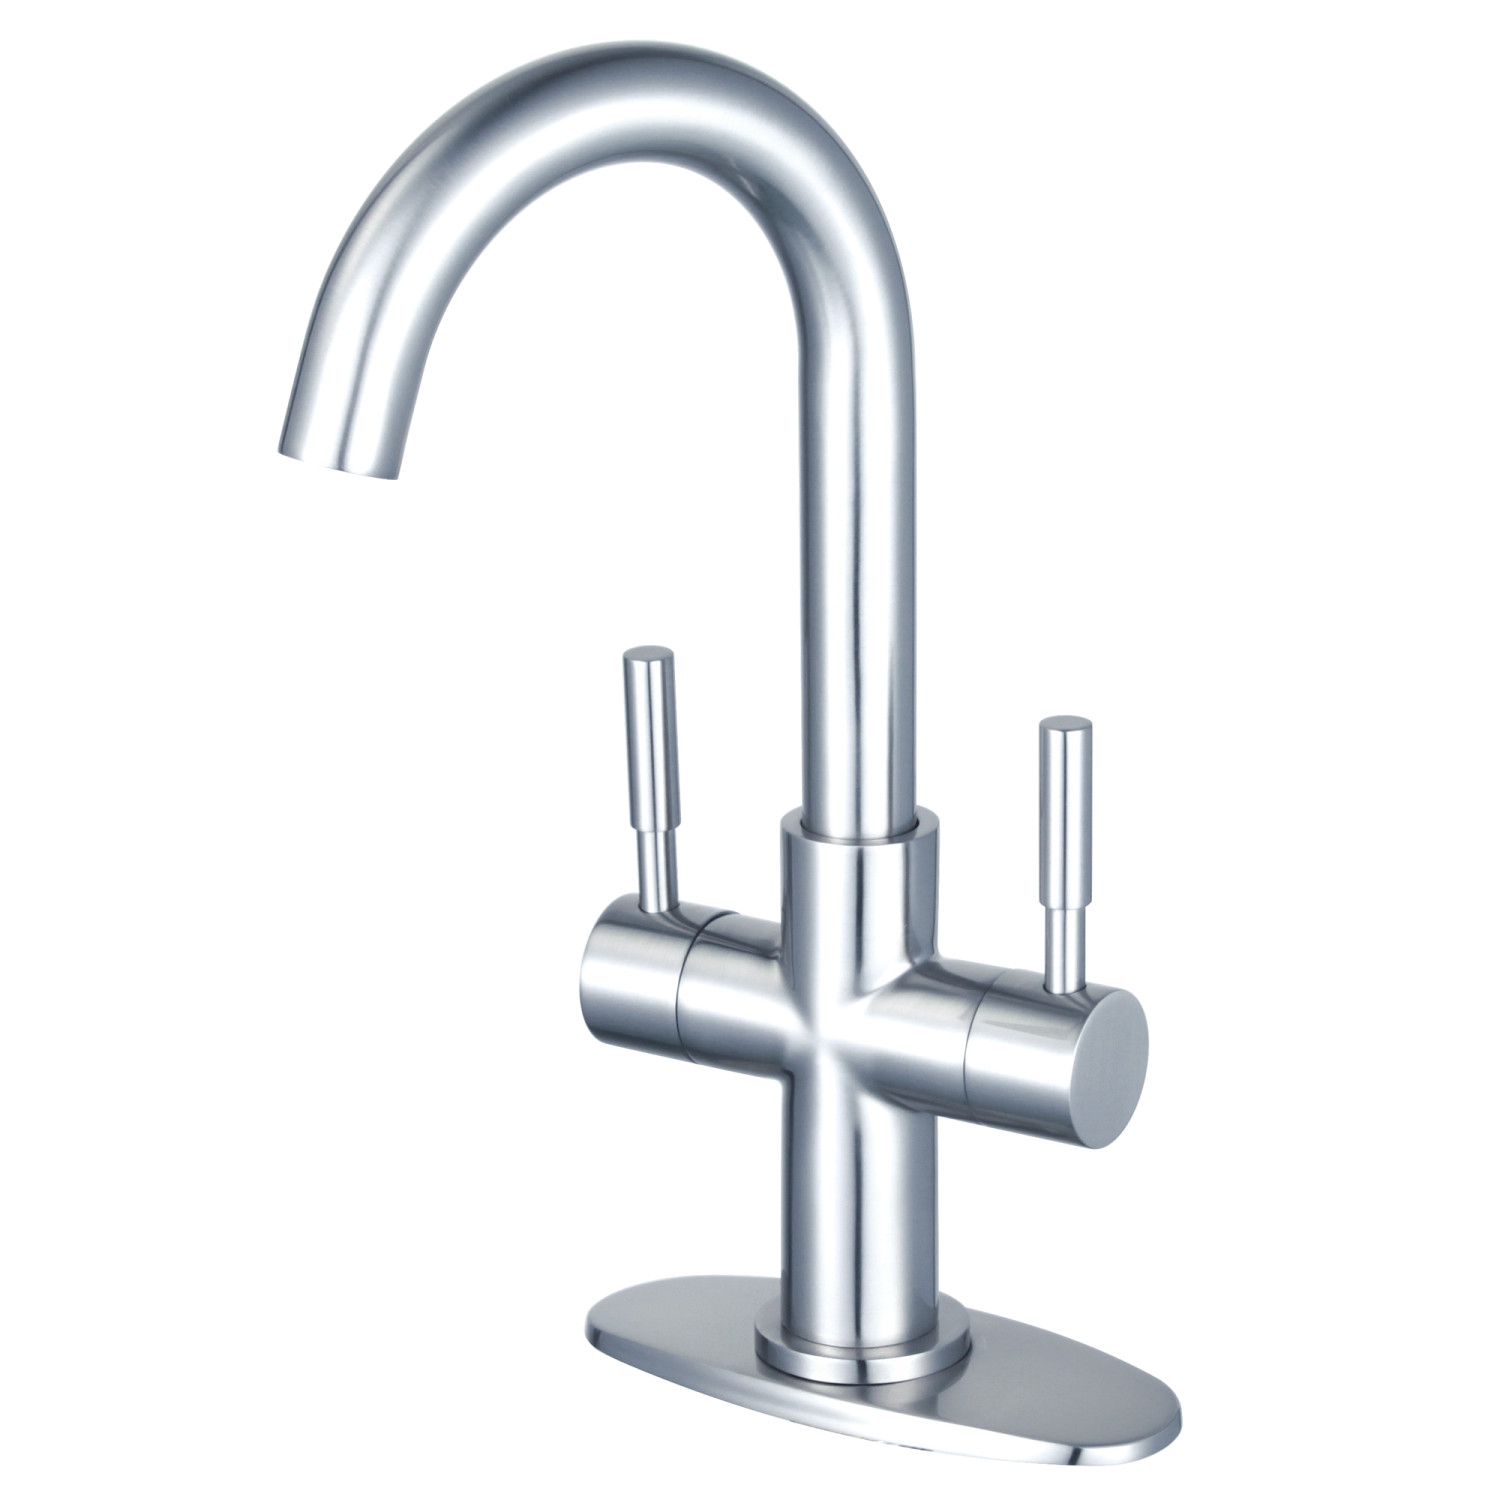 Two-Handle 1-Hole Deck Mount Bathroom Faucet with Push Pop-Up in Polished Chrome